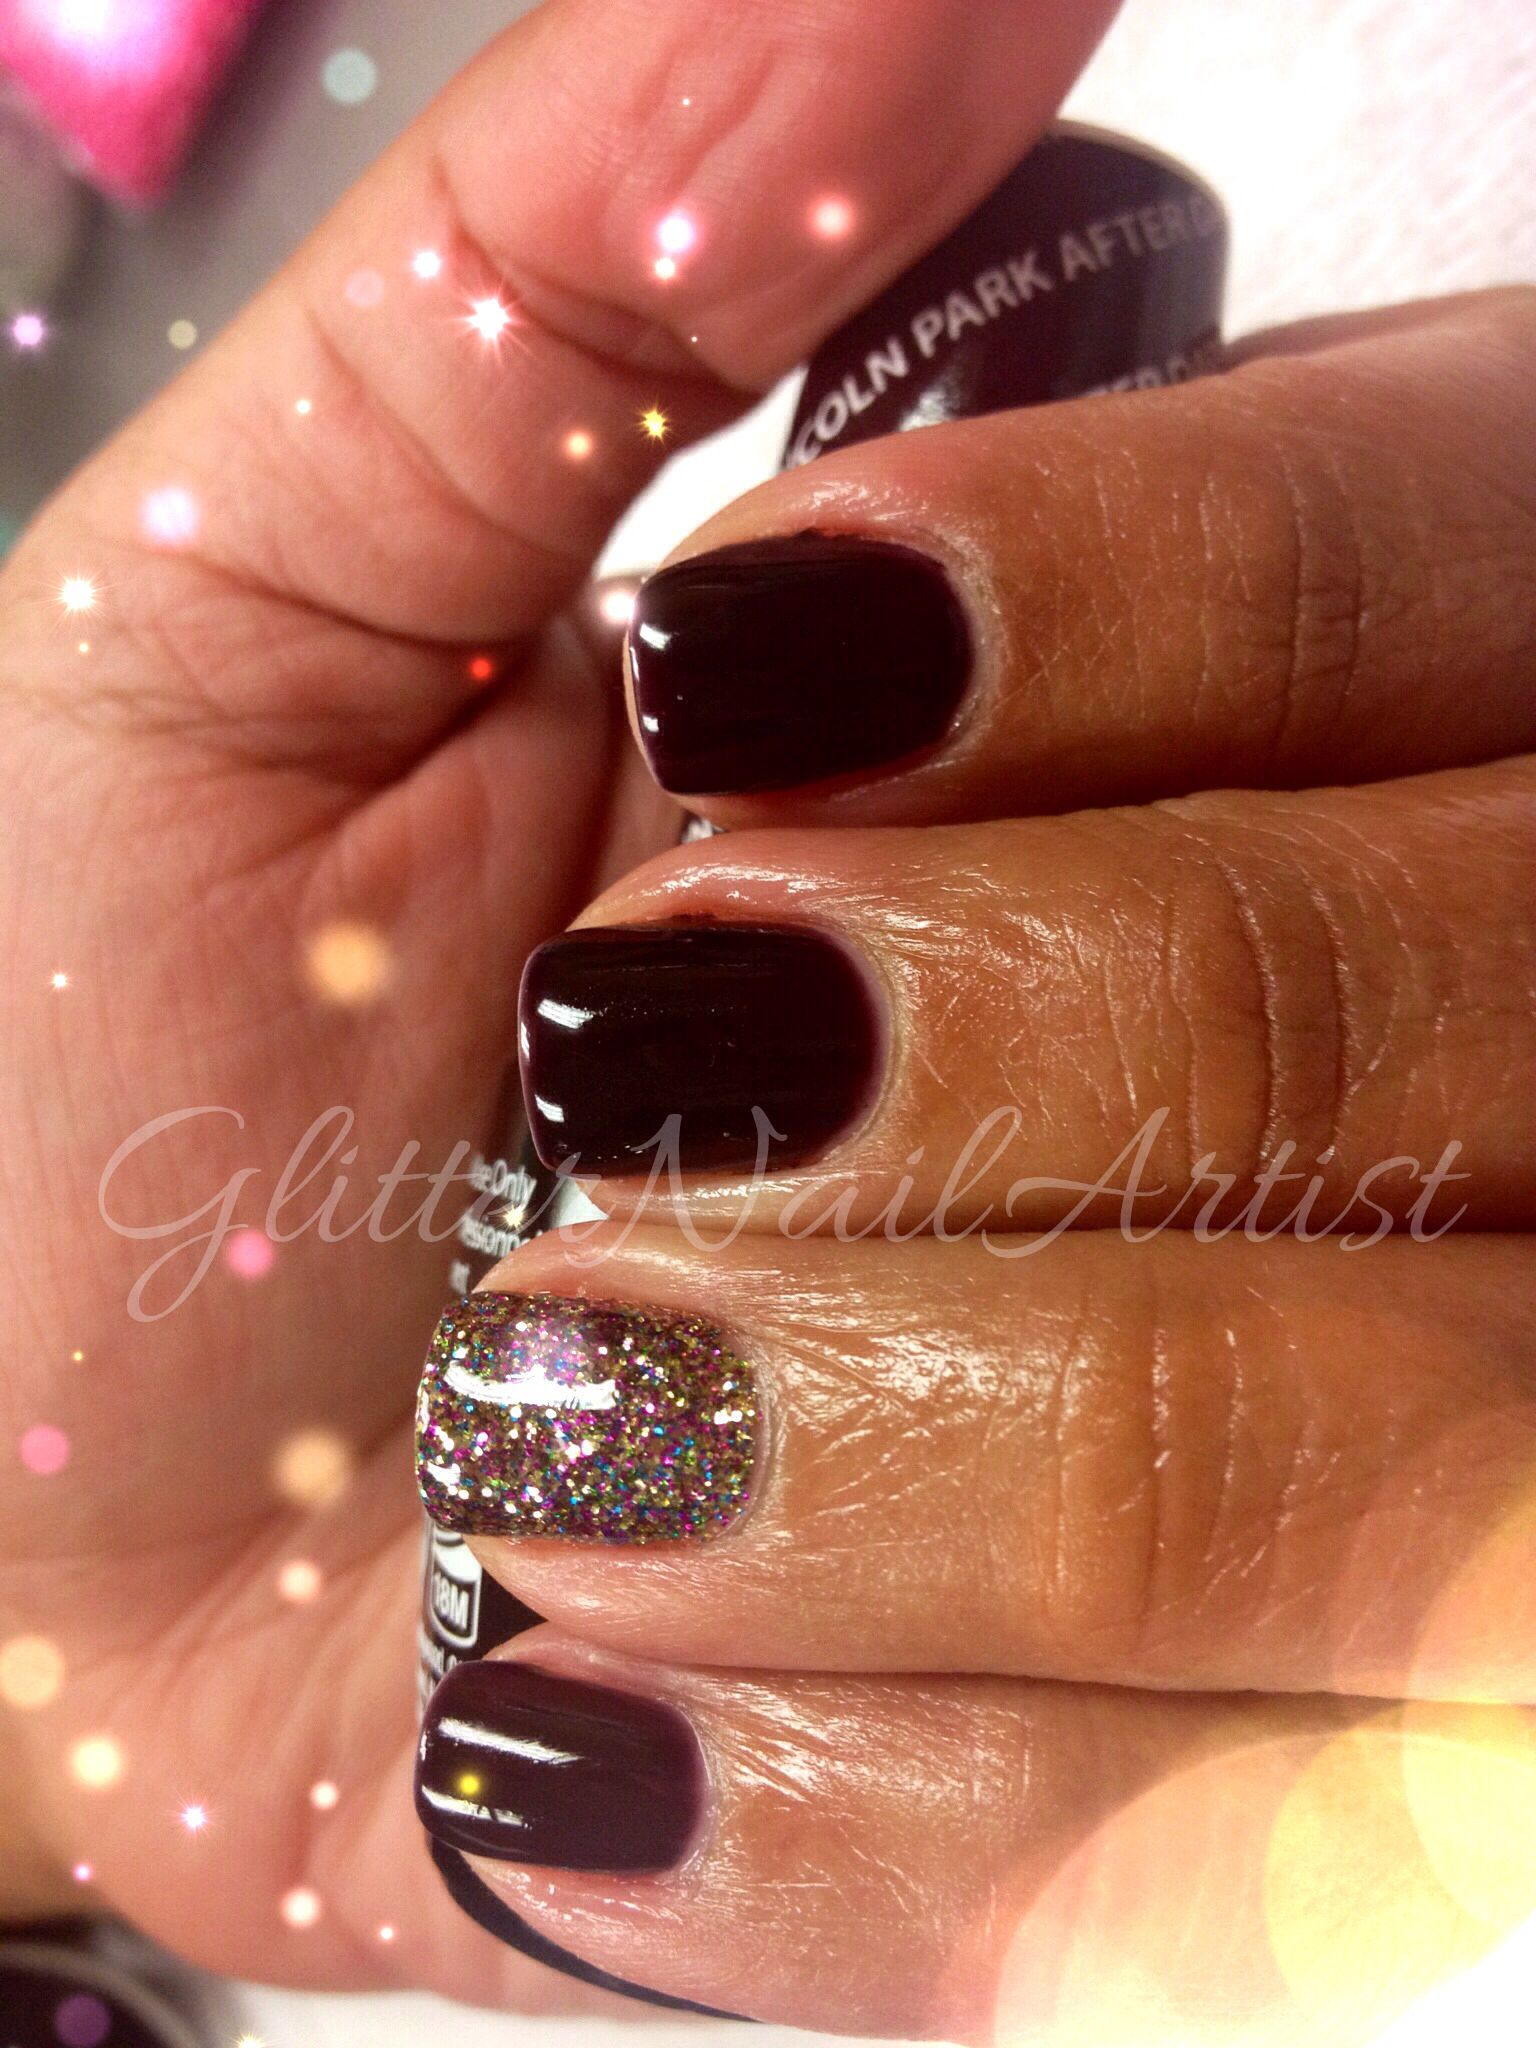 GlitterNailArtist| Lincoln Park After Dark w/ a pop of glitter ...